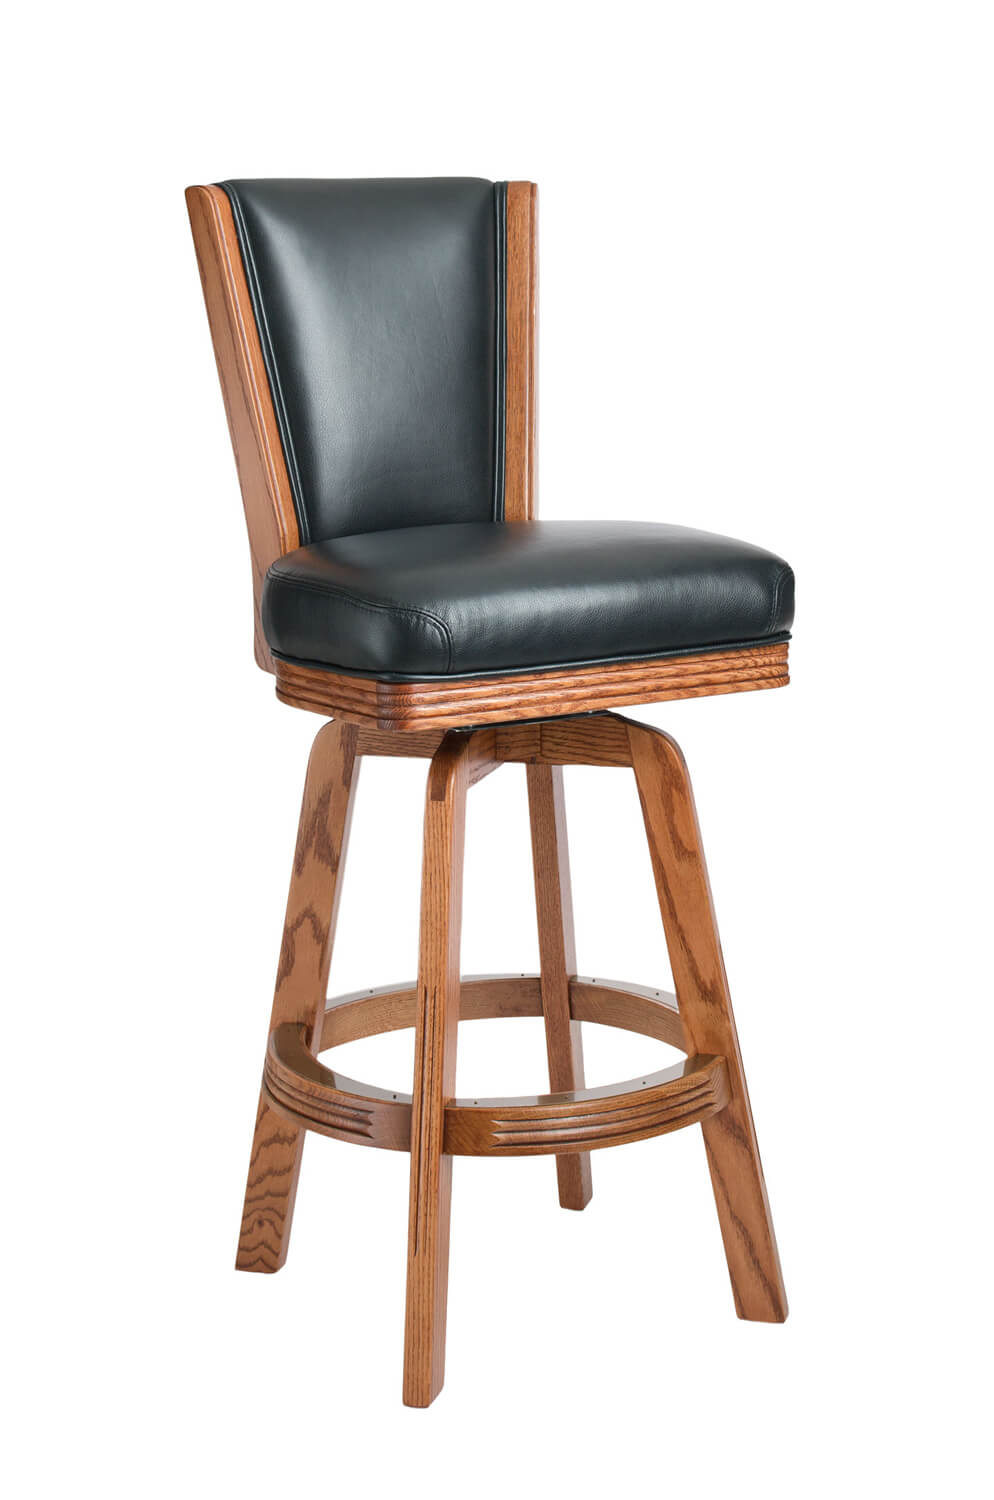 Darafeev's 615 Oak Upholstered Swivel Stool